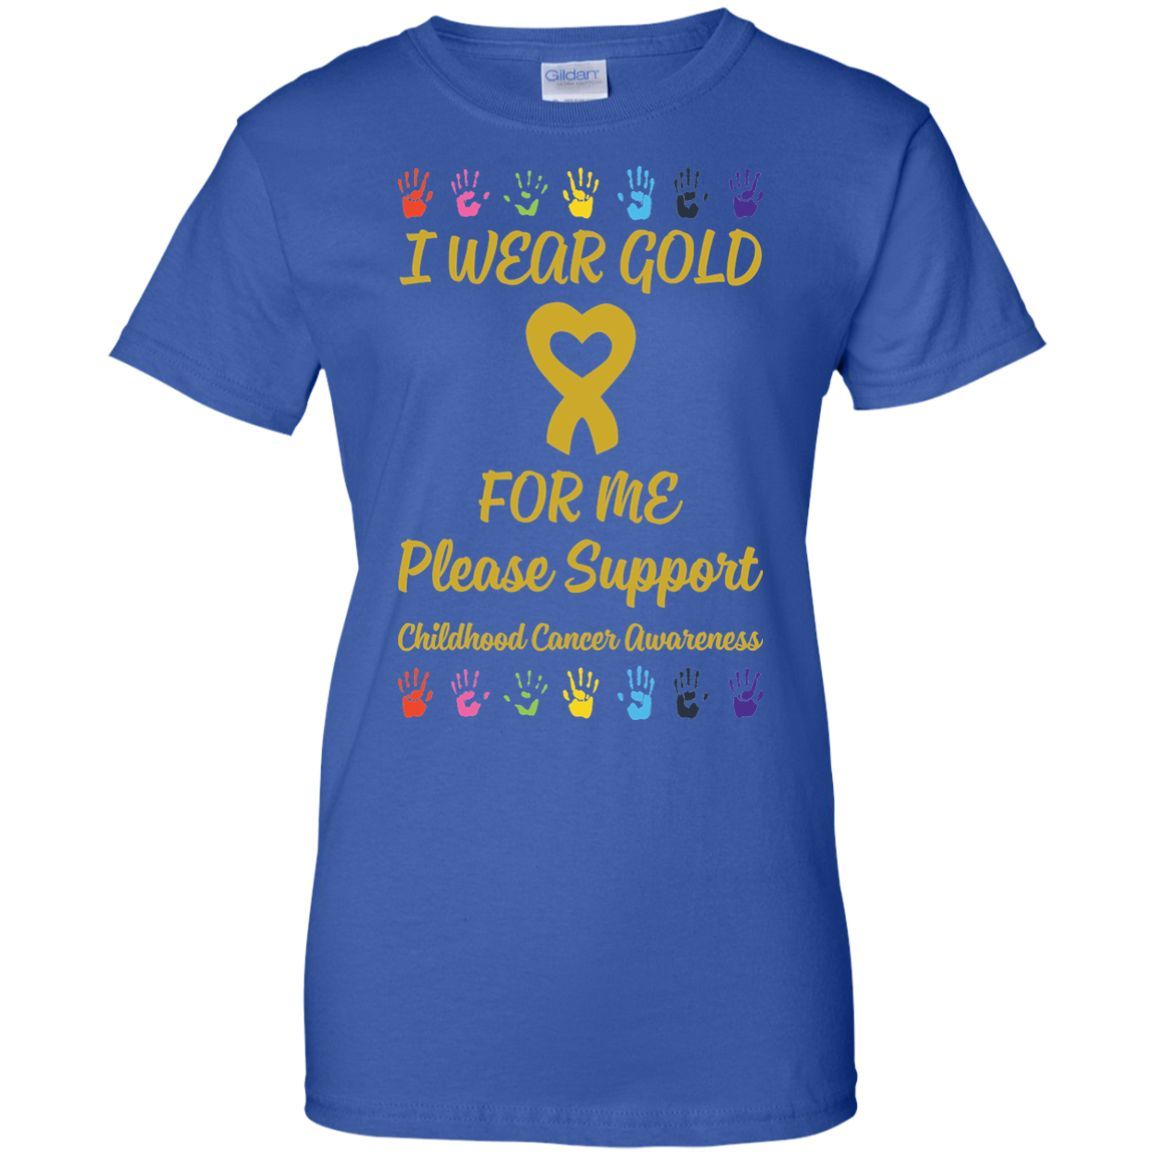 I Wear Gold For Childhood Cancer Awareness Ribbon T-Shirt-01 Ladies Custom 100% Cotton T-Shirt